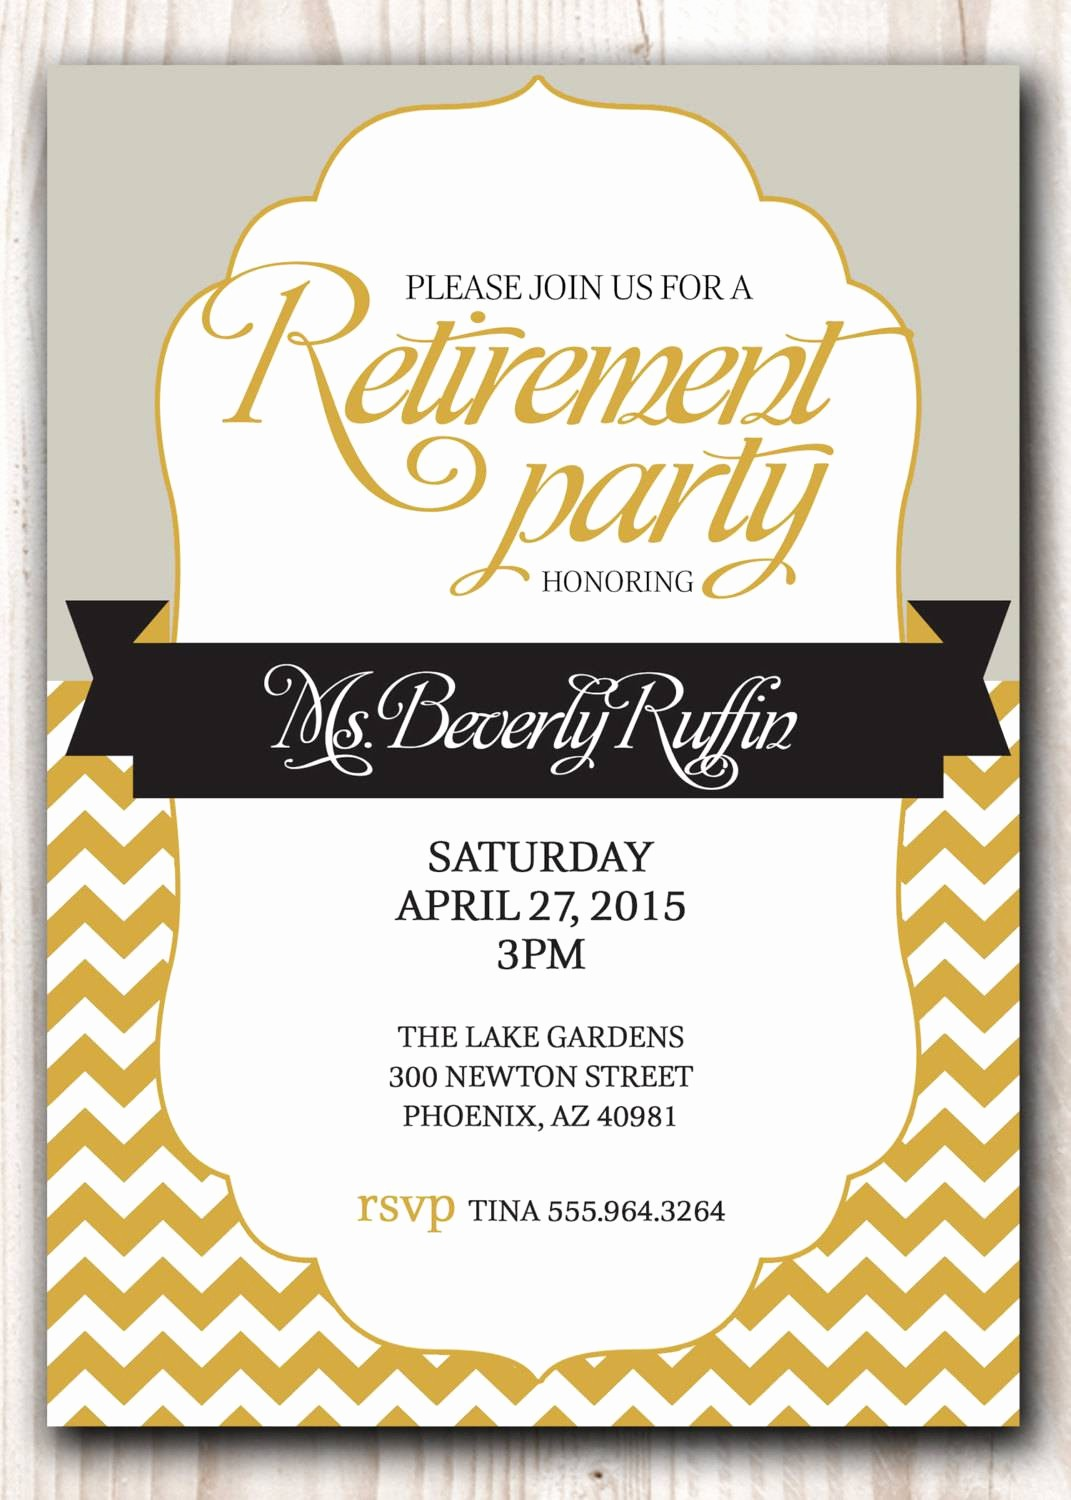 Party Invitation Template Microsoft Word Lovely Retirement Party Invitation Template